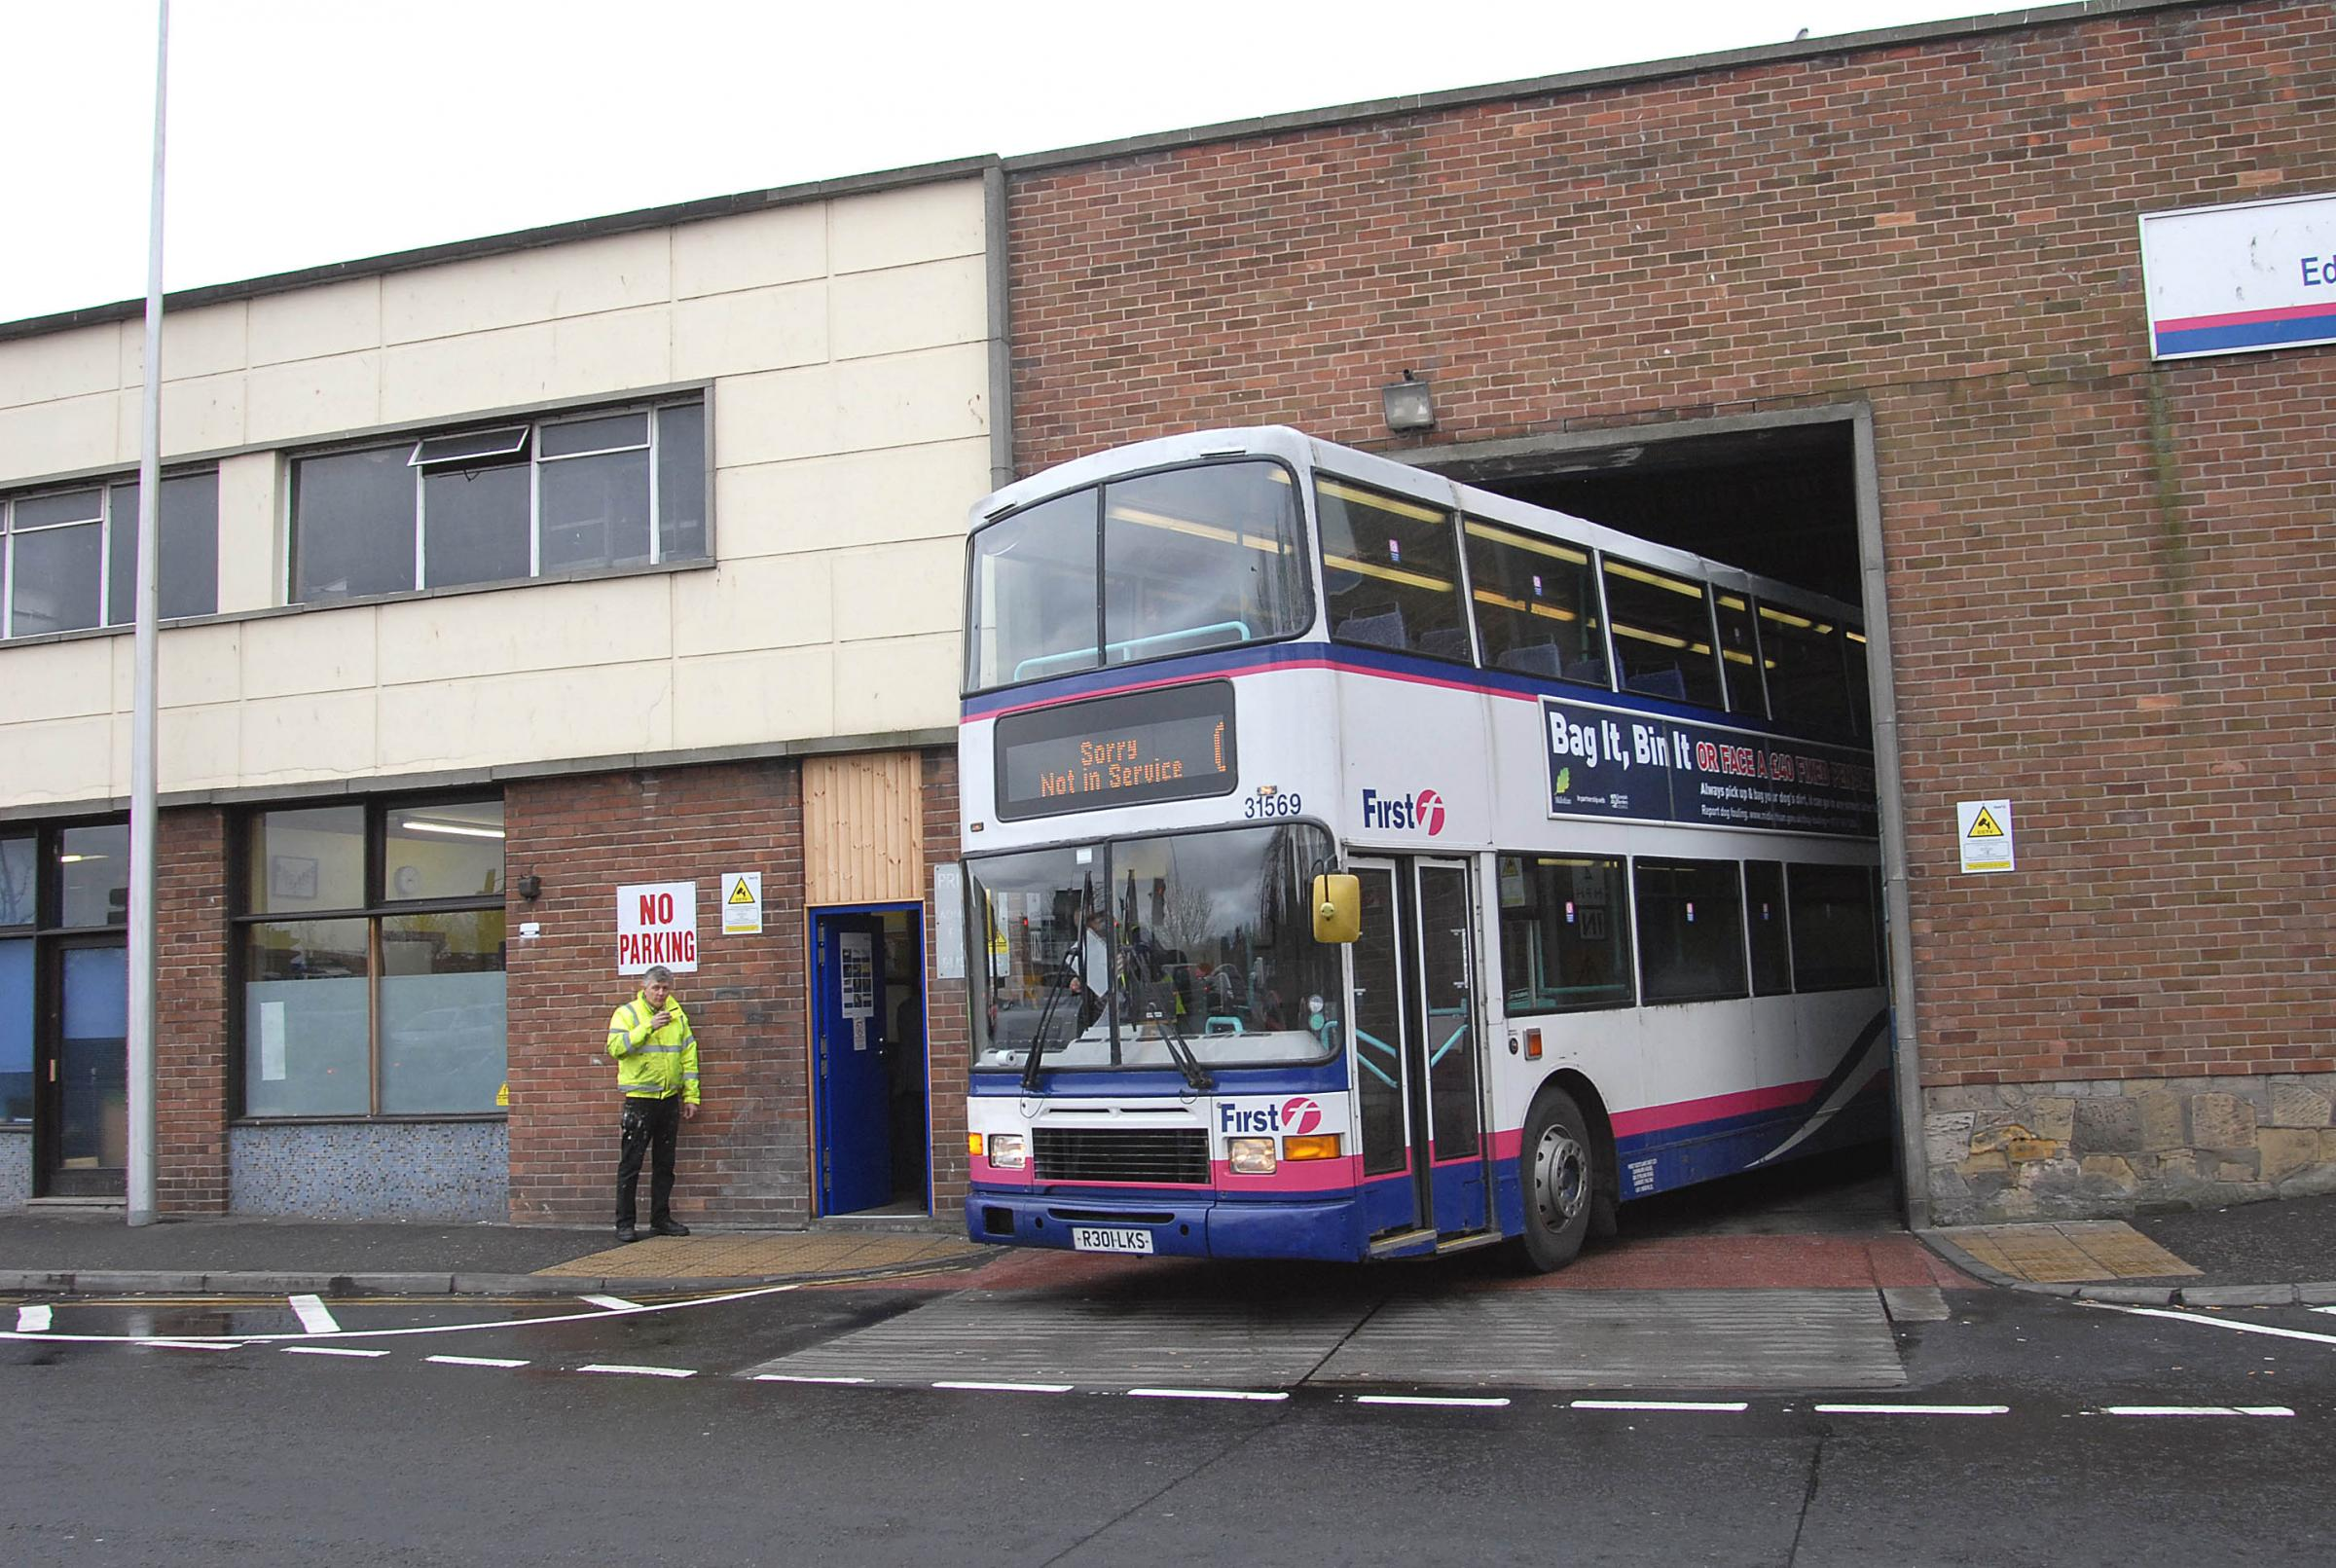 First bus will close its depots at Musselburgh (pictured here) and North Berwick under the plans